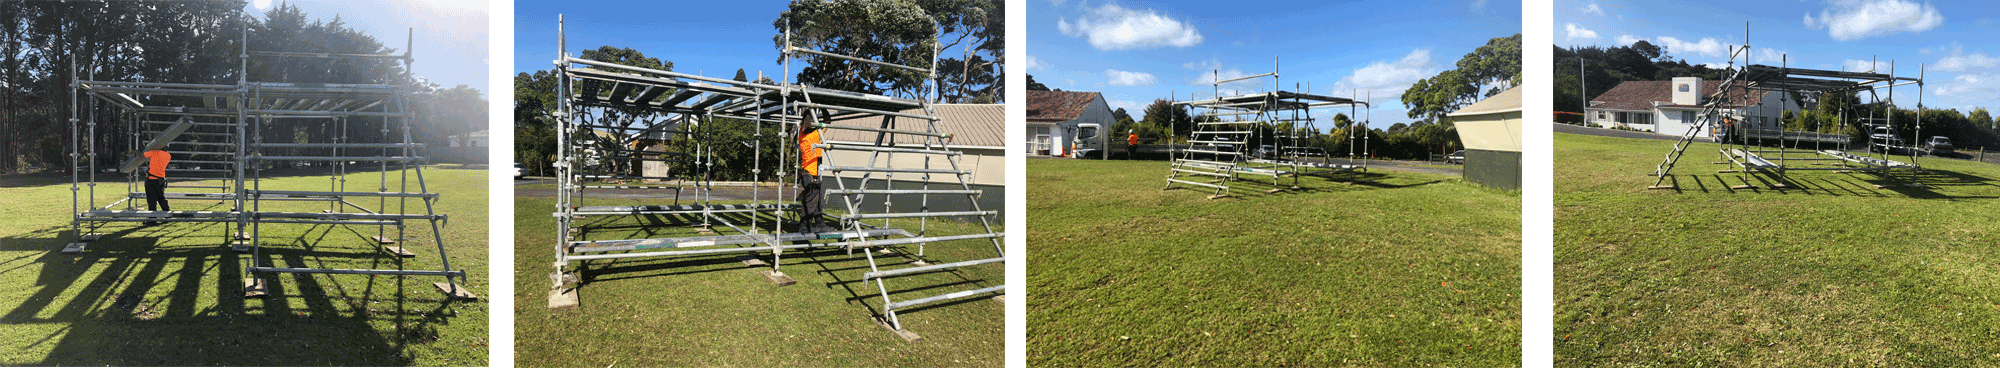 all scaffolding scout jamboree auckland